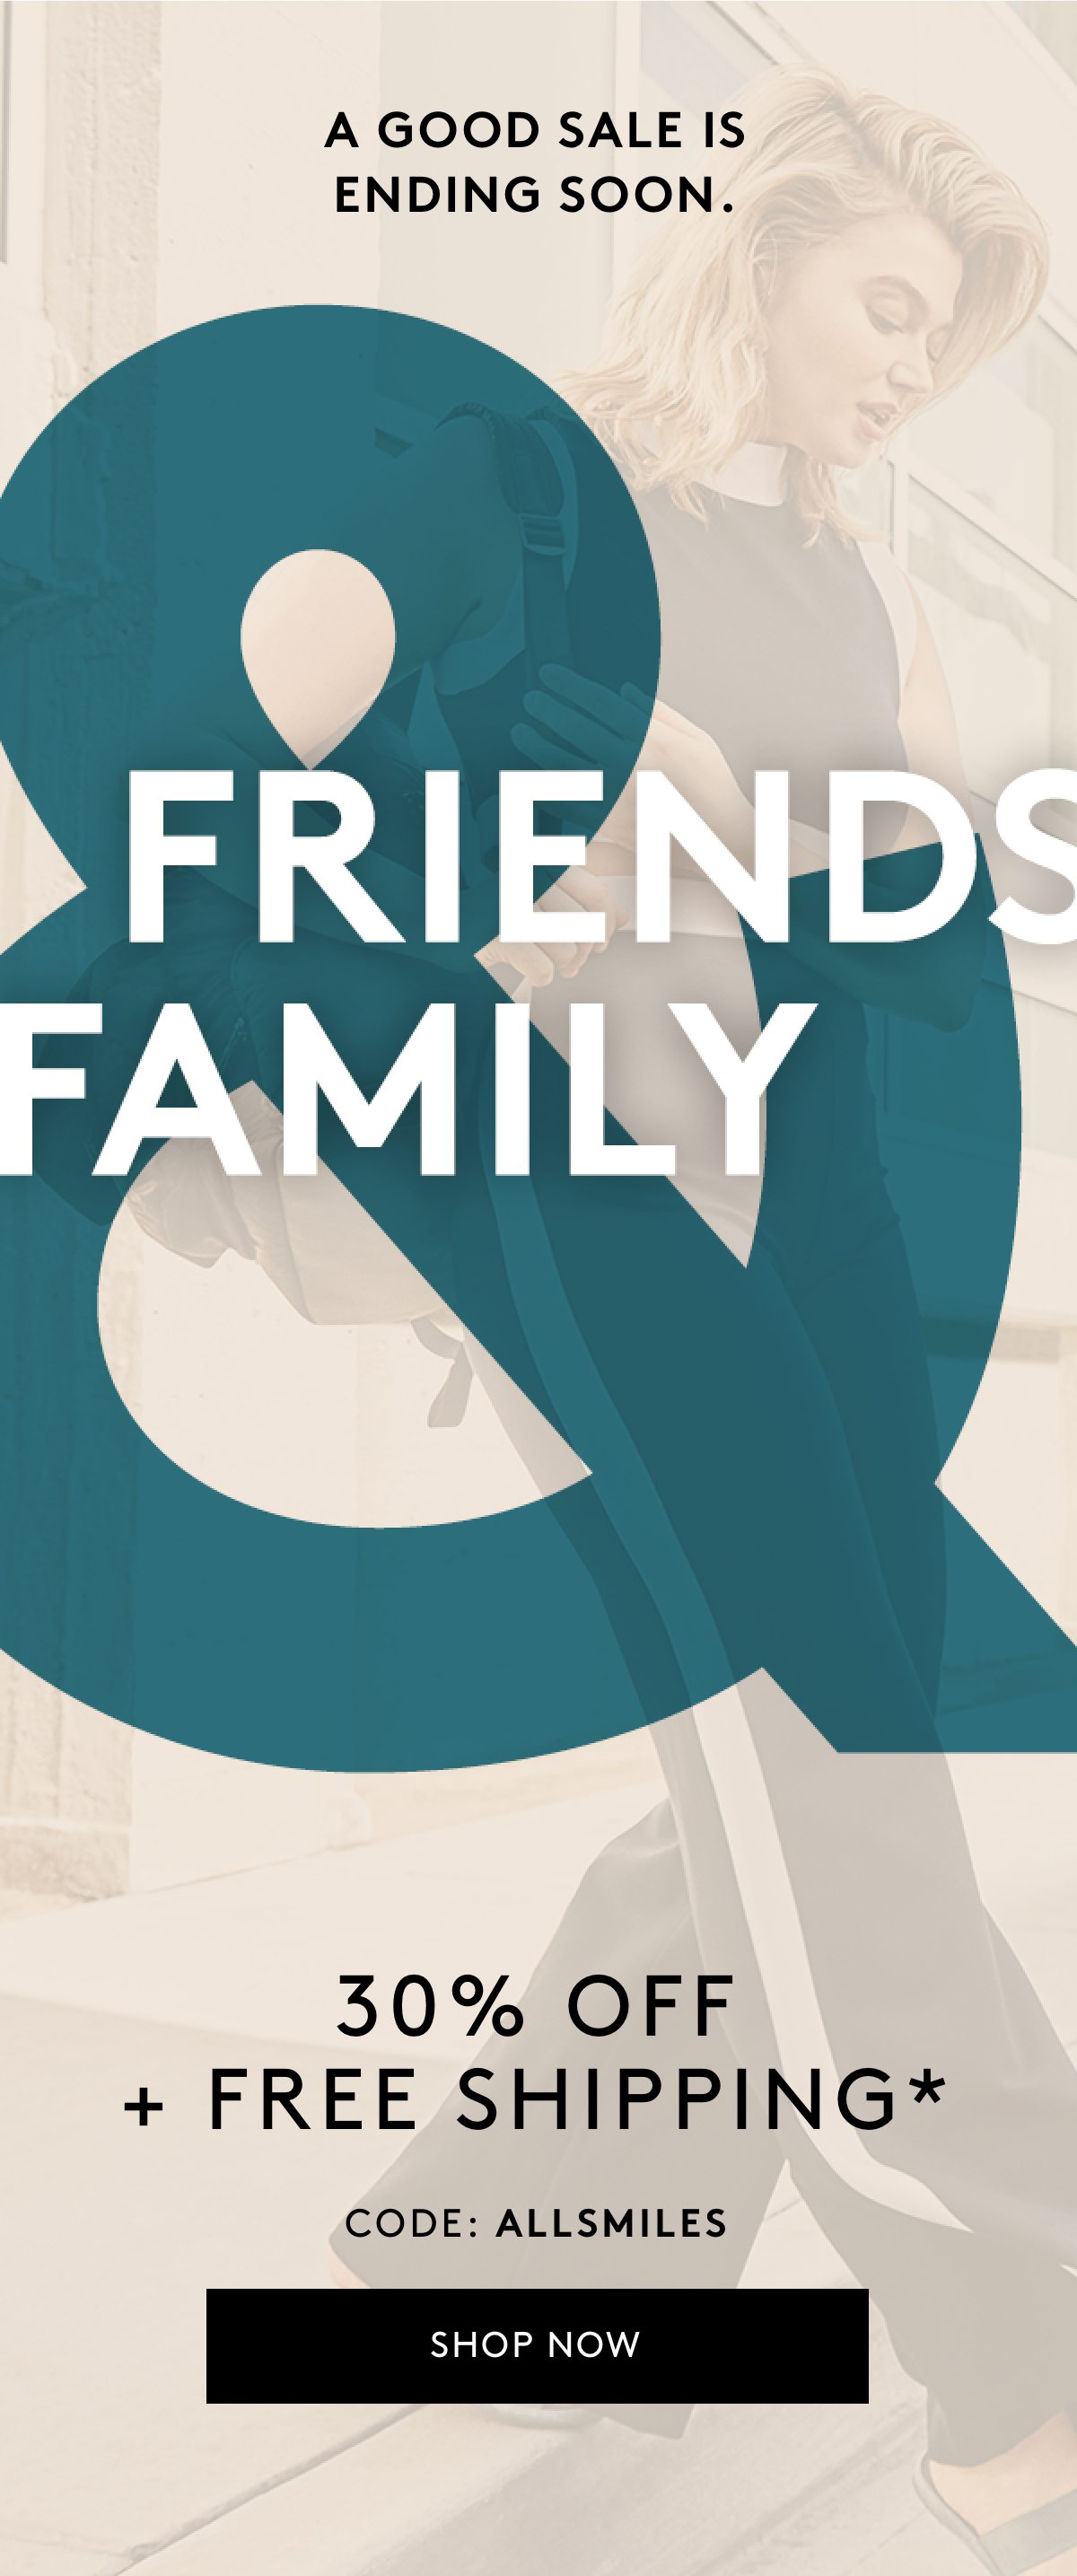 A Good Sale is Ending Soon. Friends Family 30% off + Free shipping* Code: ALLSMILES Shop Now